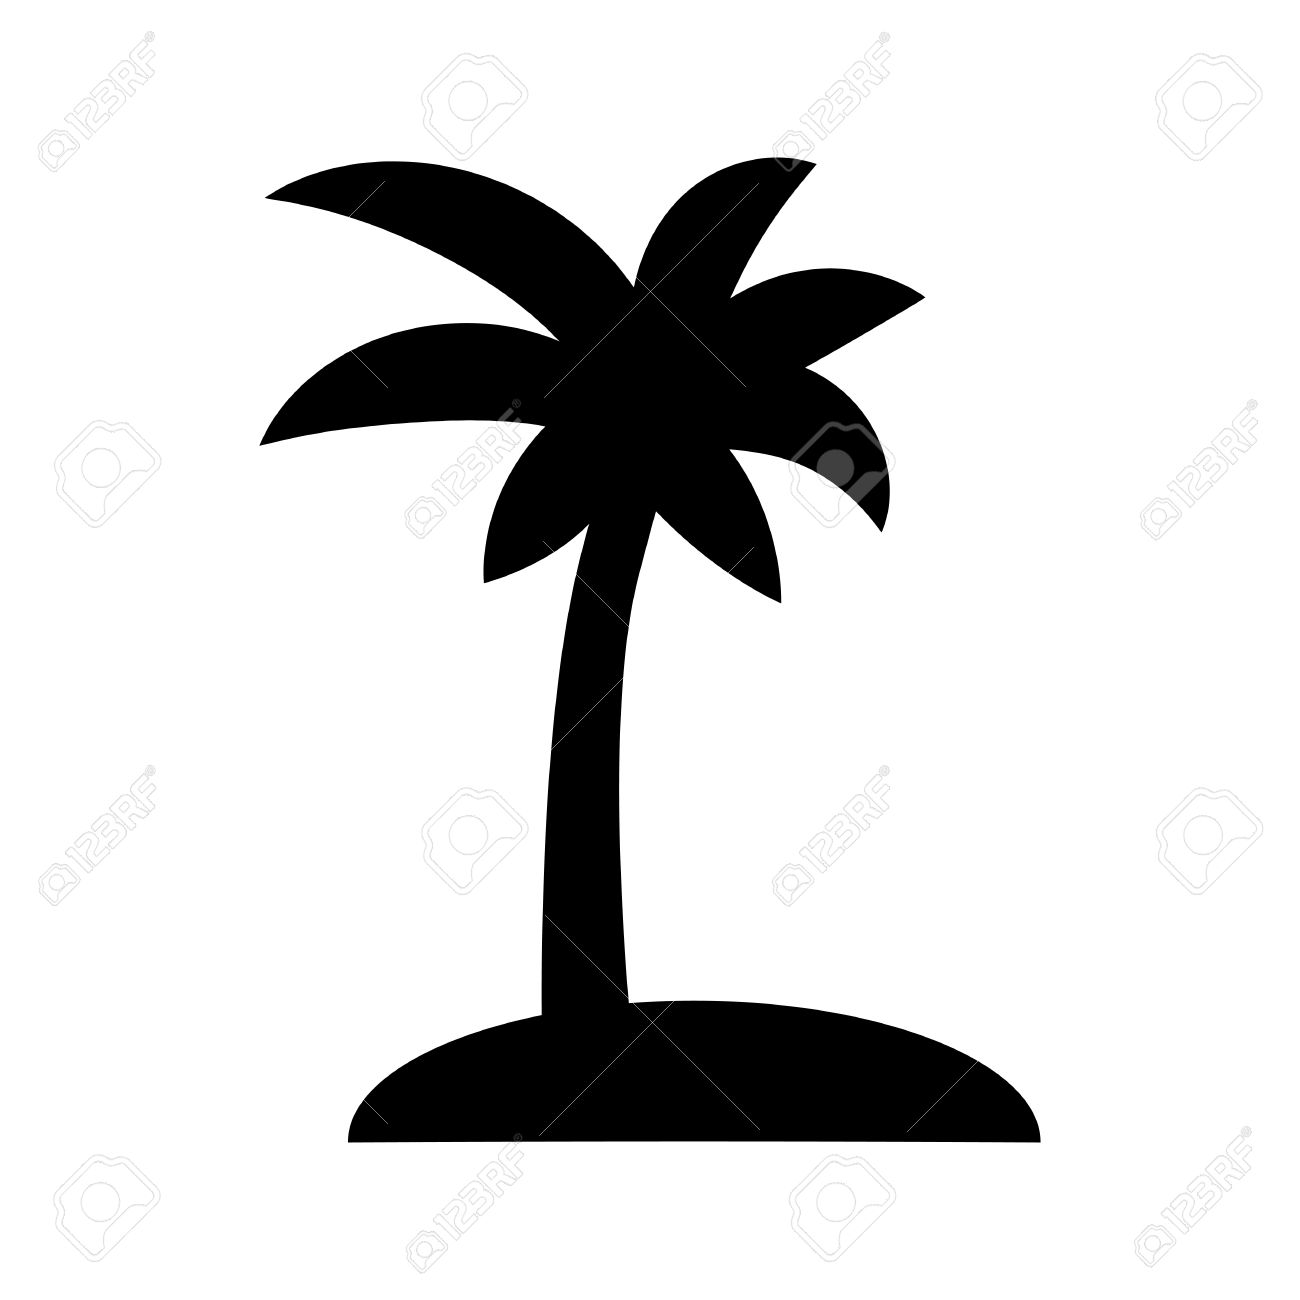 coconut palm tree black silhouette isolated on a white background rh 123rf com palm tree free vector art palm tree leaves free vector